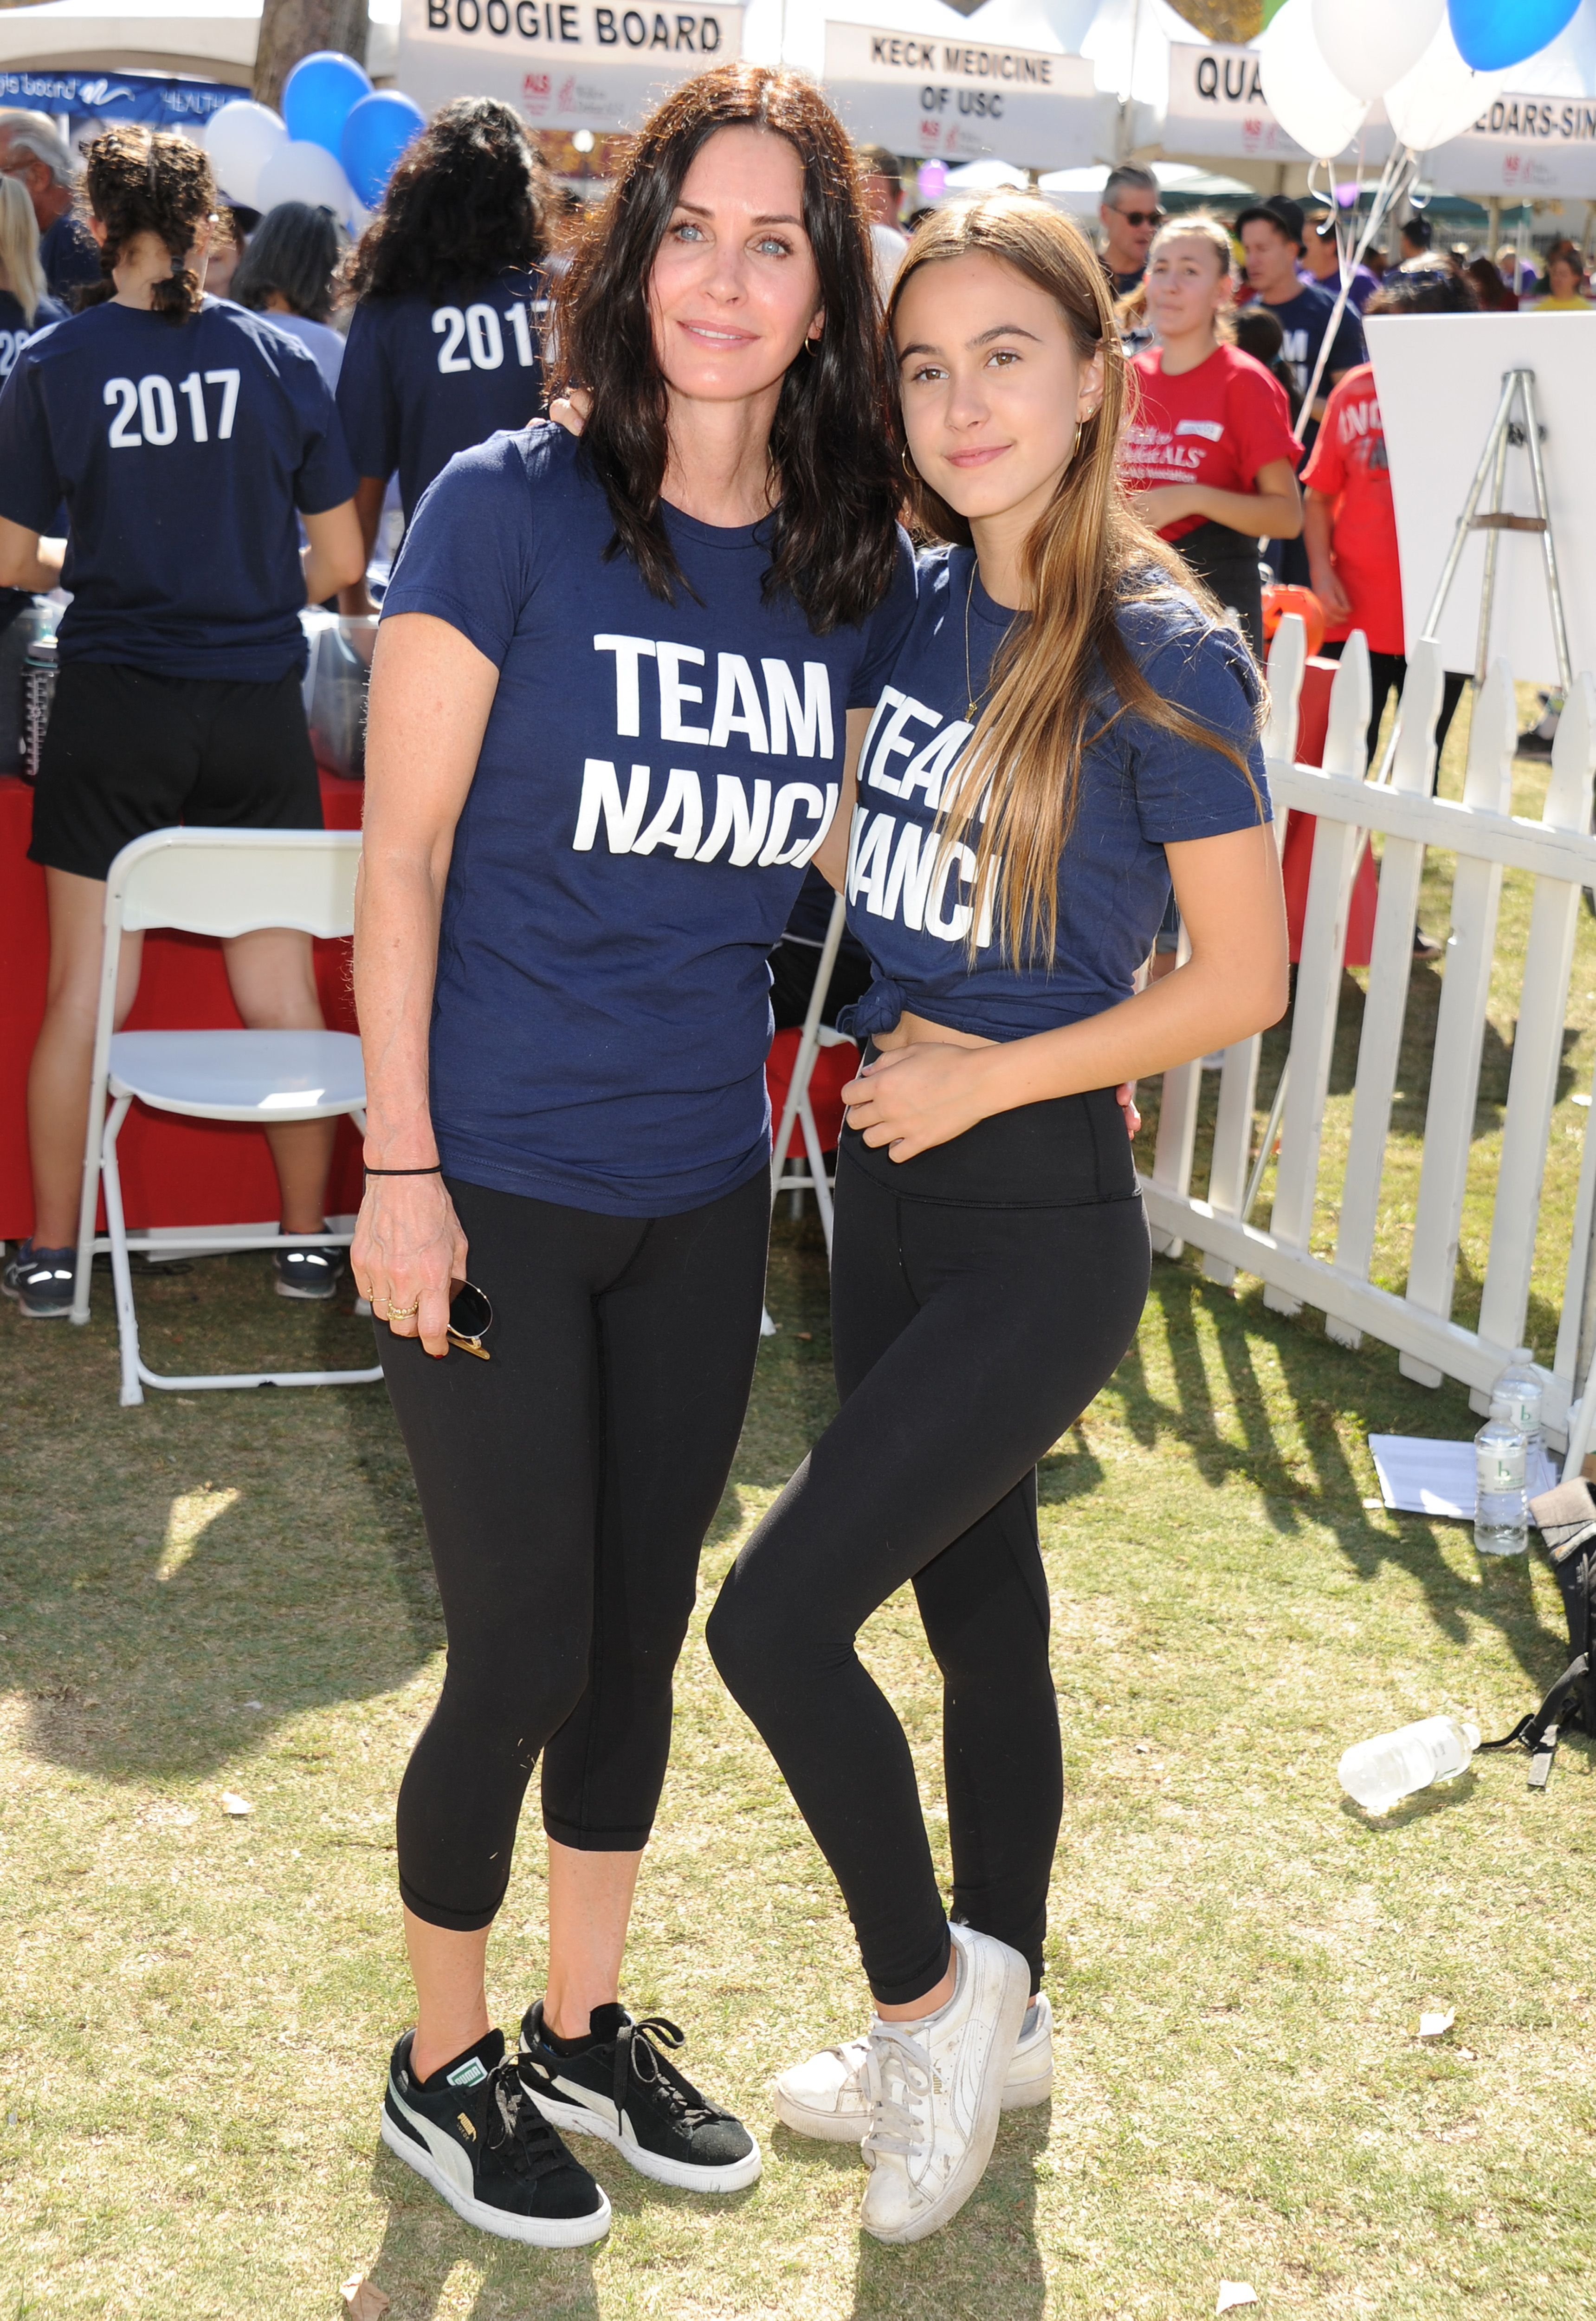 Courteney Cox and daughter Coco Arquette at the 15th Annual LA County Walk To Defeat ALS in 2017 in Los Angeles | Source: Getty Images